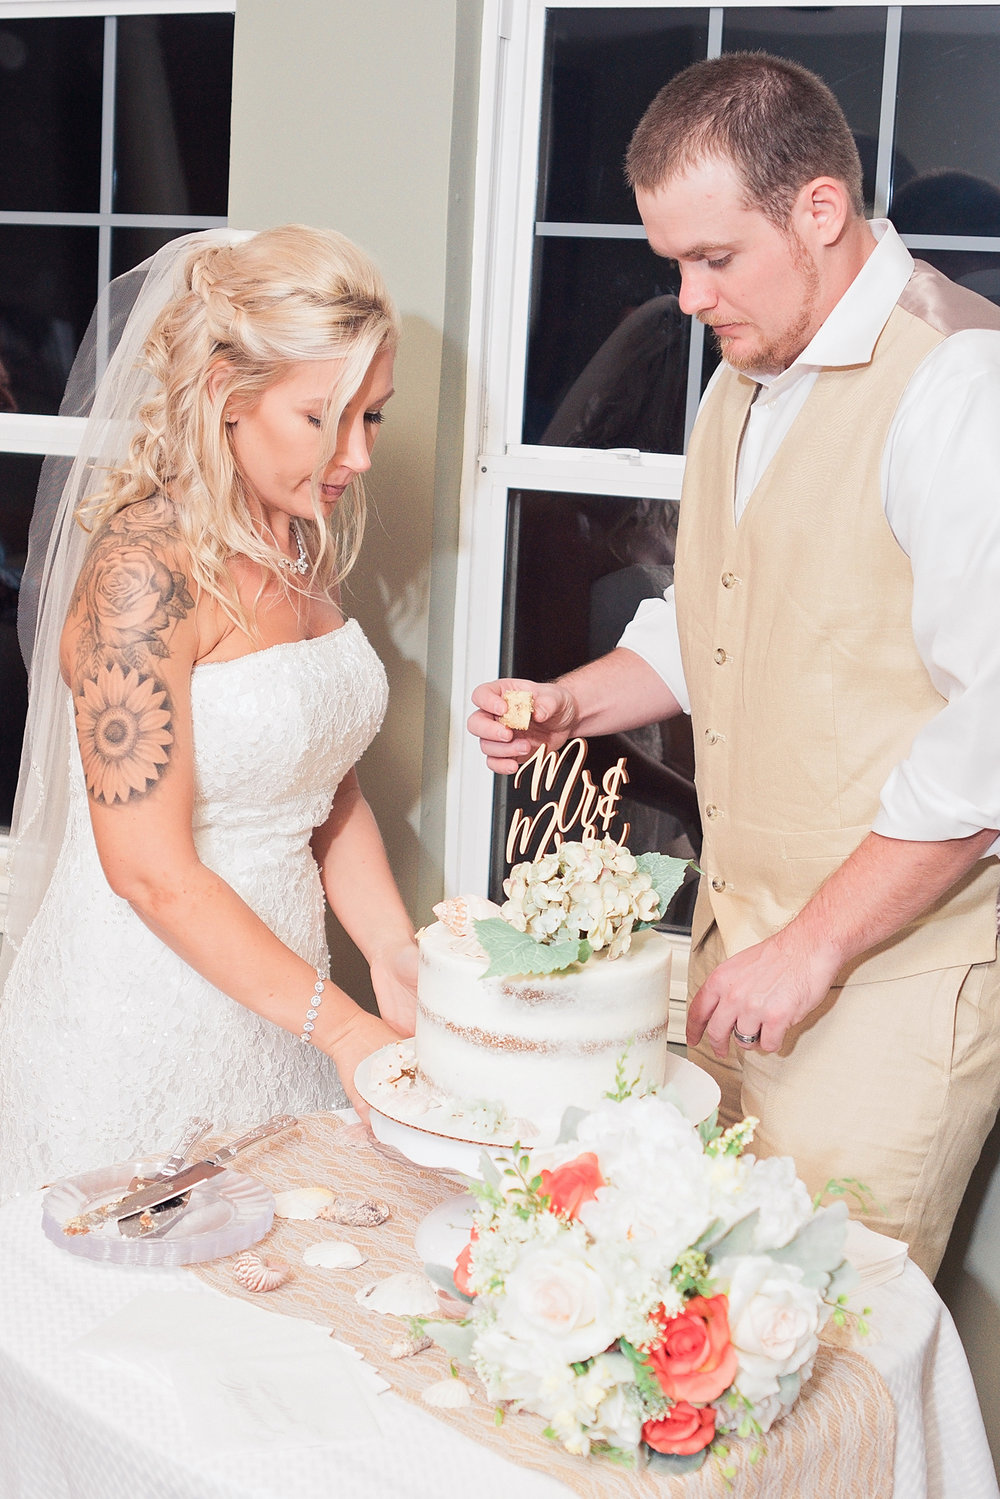 Cake_and_party (13).jpg